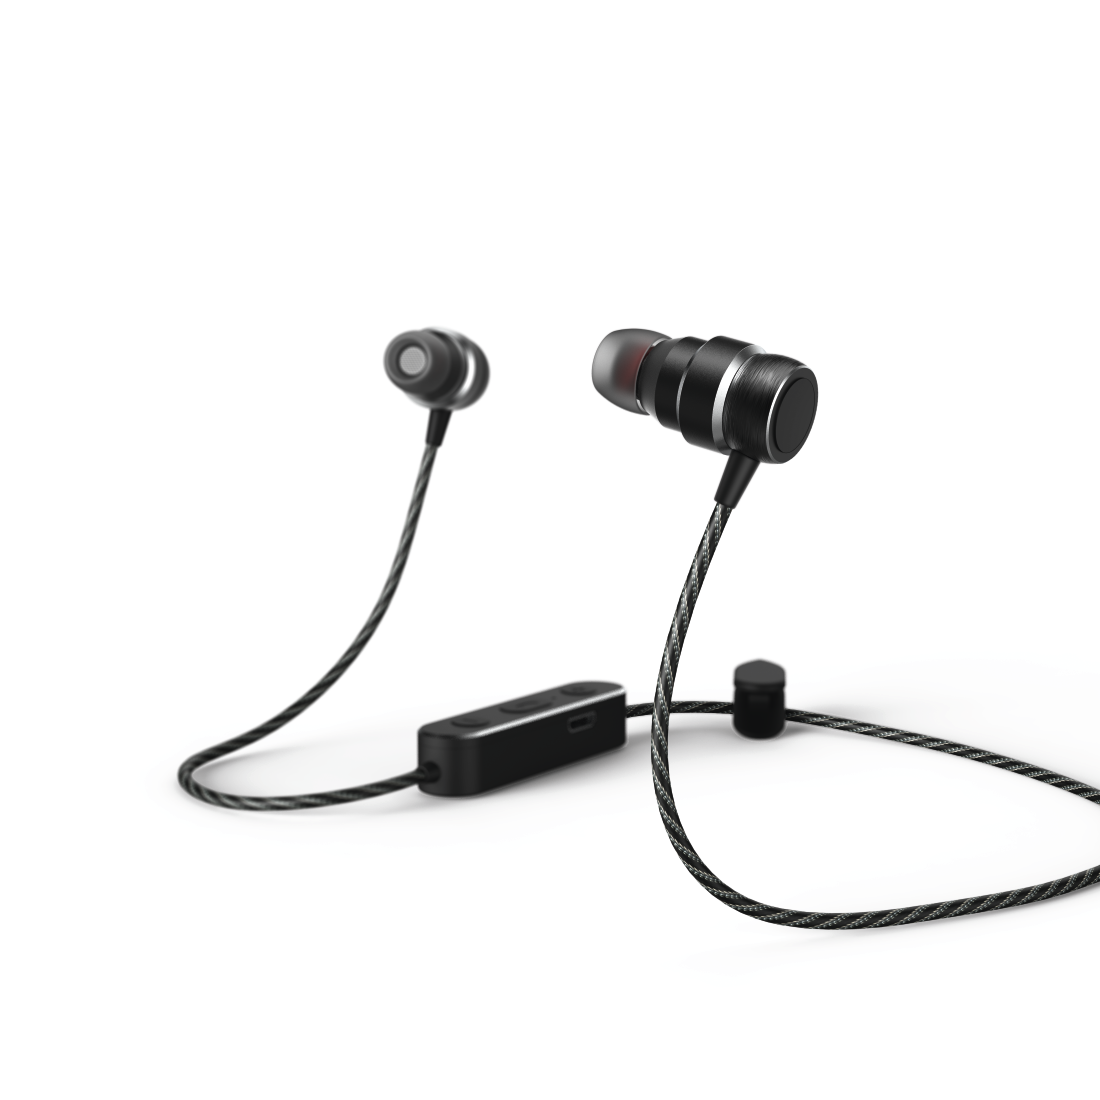 abx Druckfähige Abbildung - Hama, Bluetooth-In-Ear-Stereo-Headset Pure, Schwarz